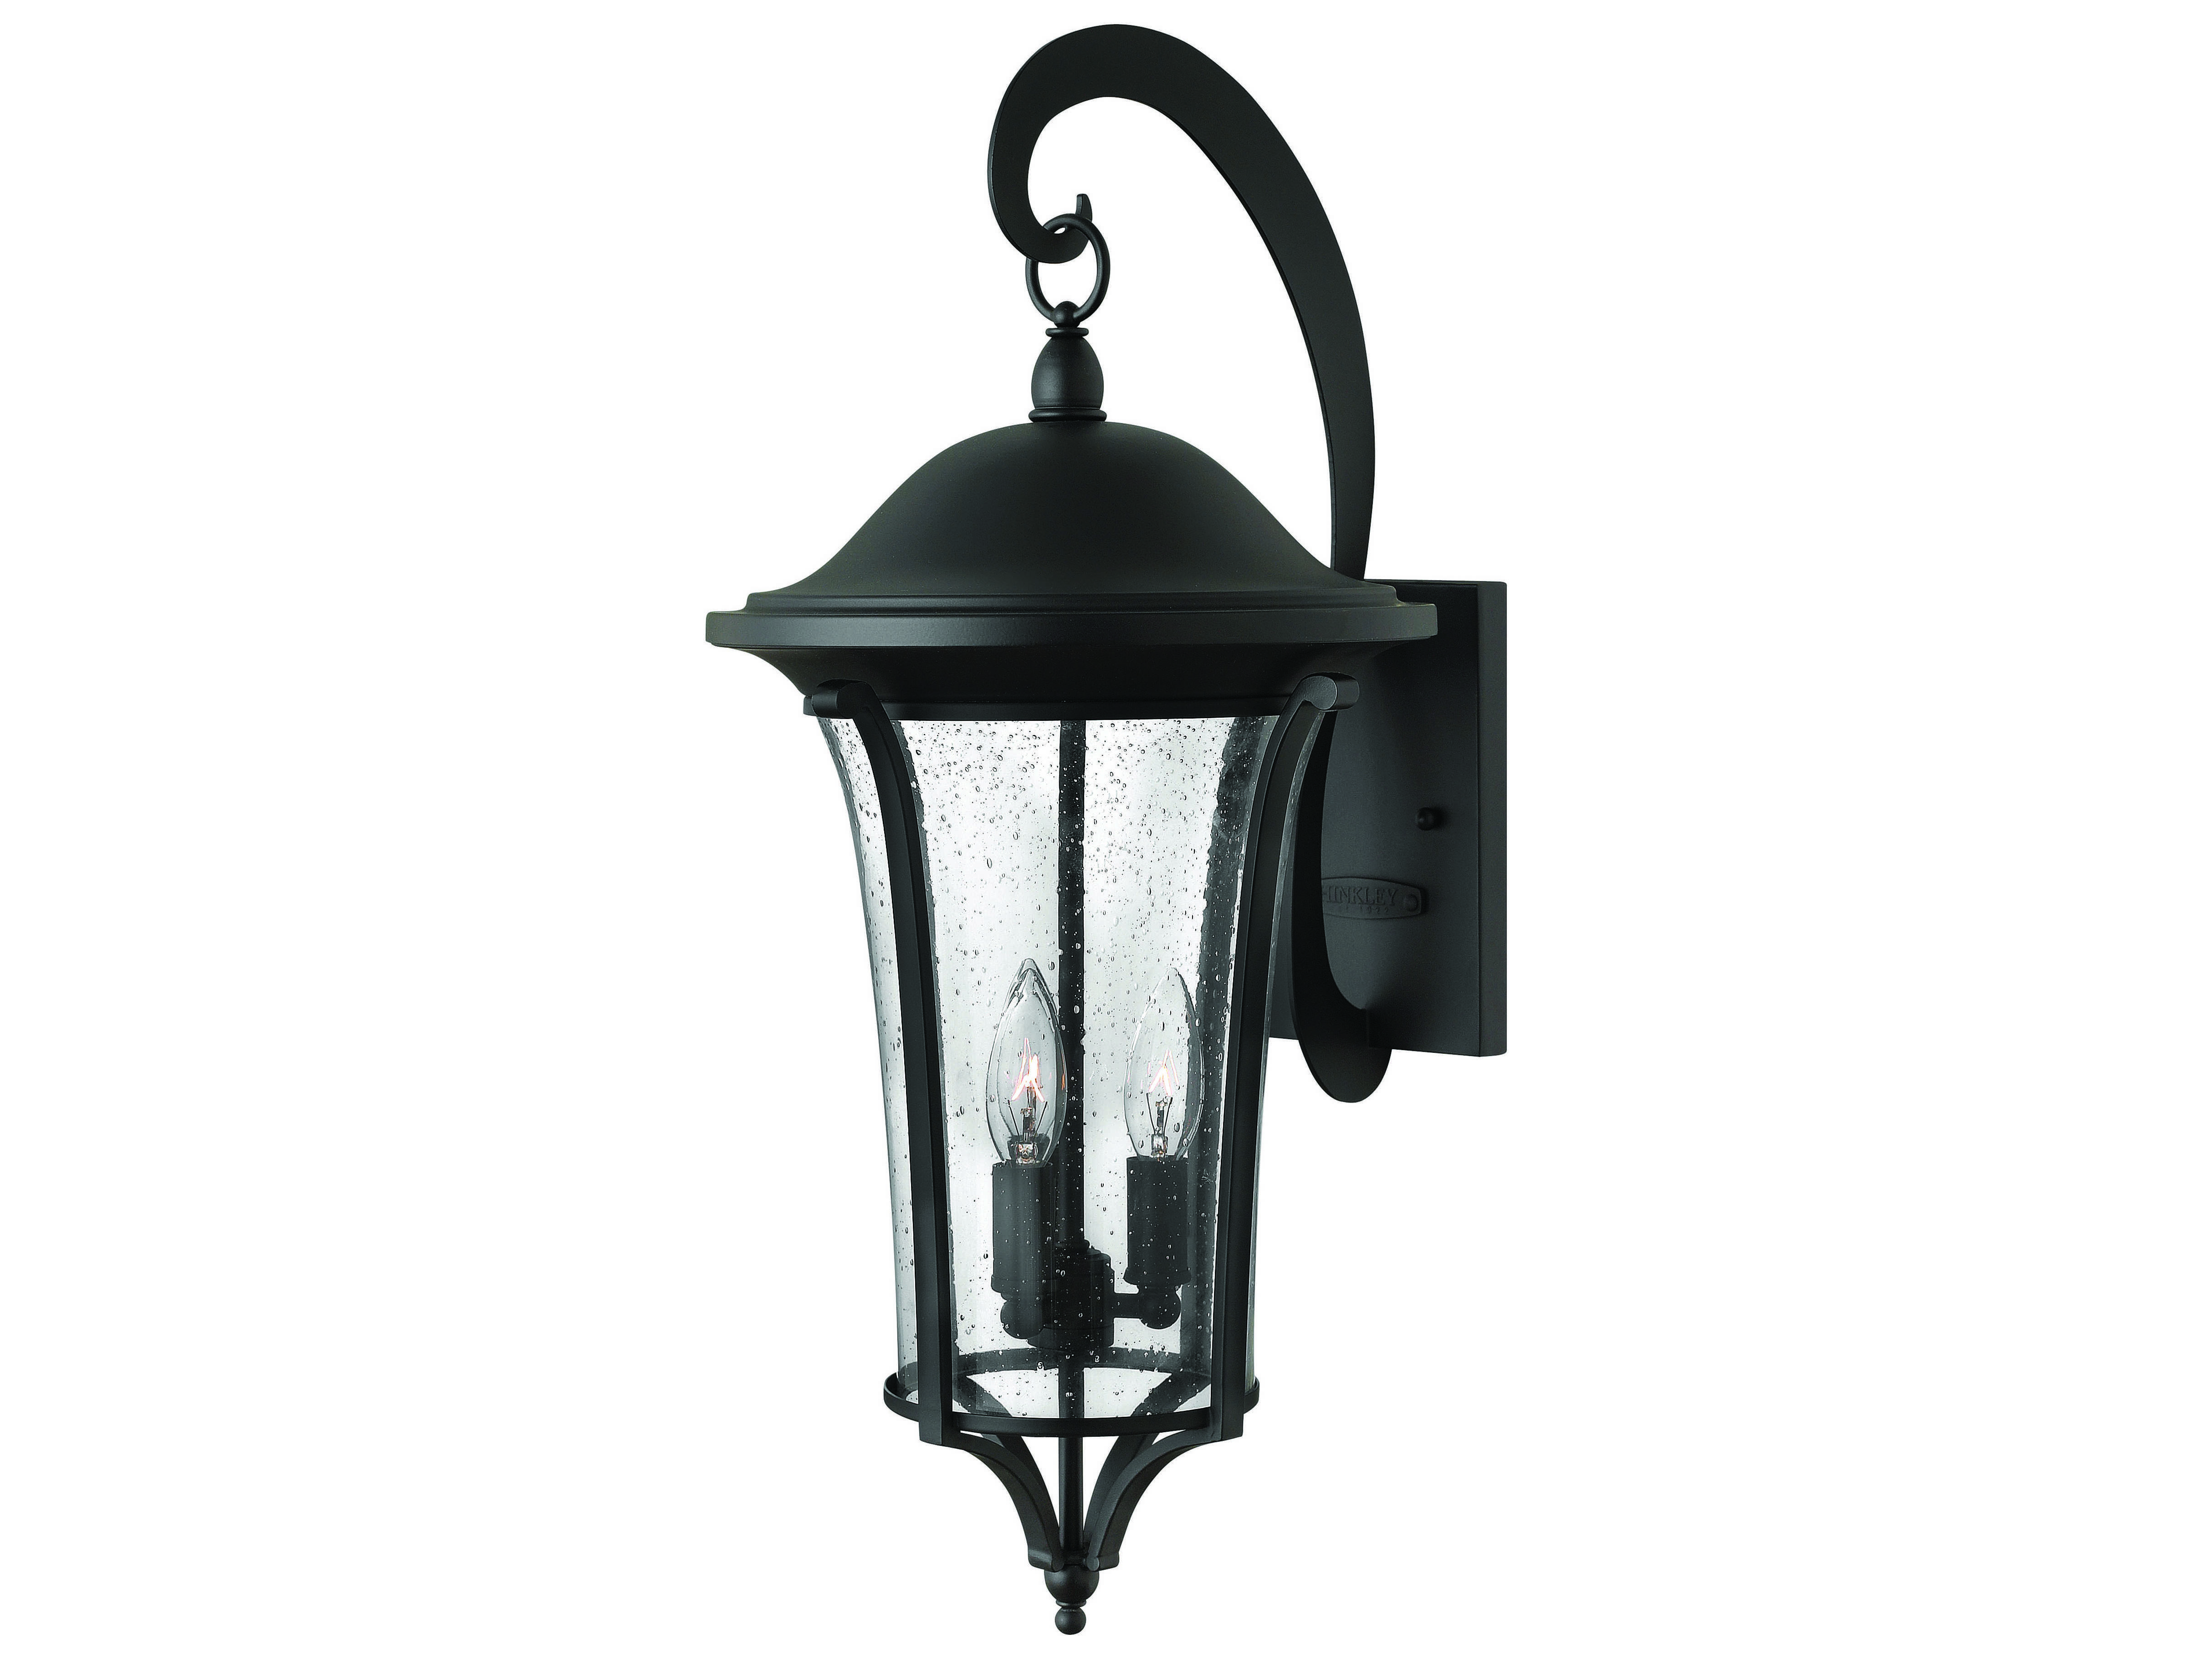 hinkley lighting chesterfield black three light outdoor wall light hy1385bk. Black Bedroom Furniture Sets. Home Design Ideas